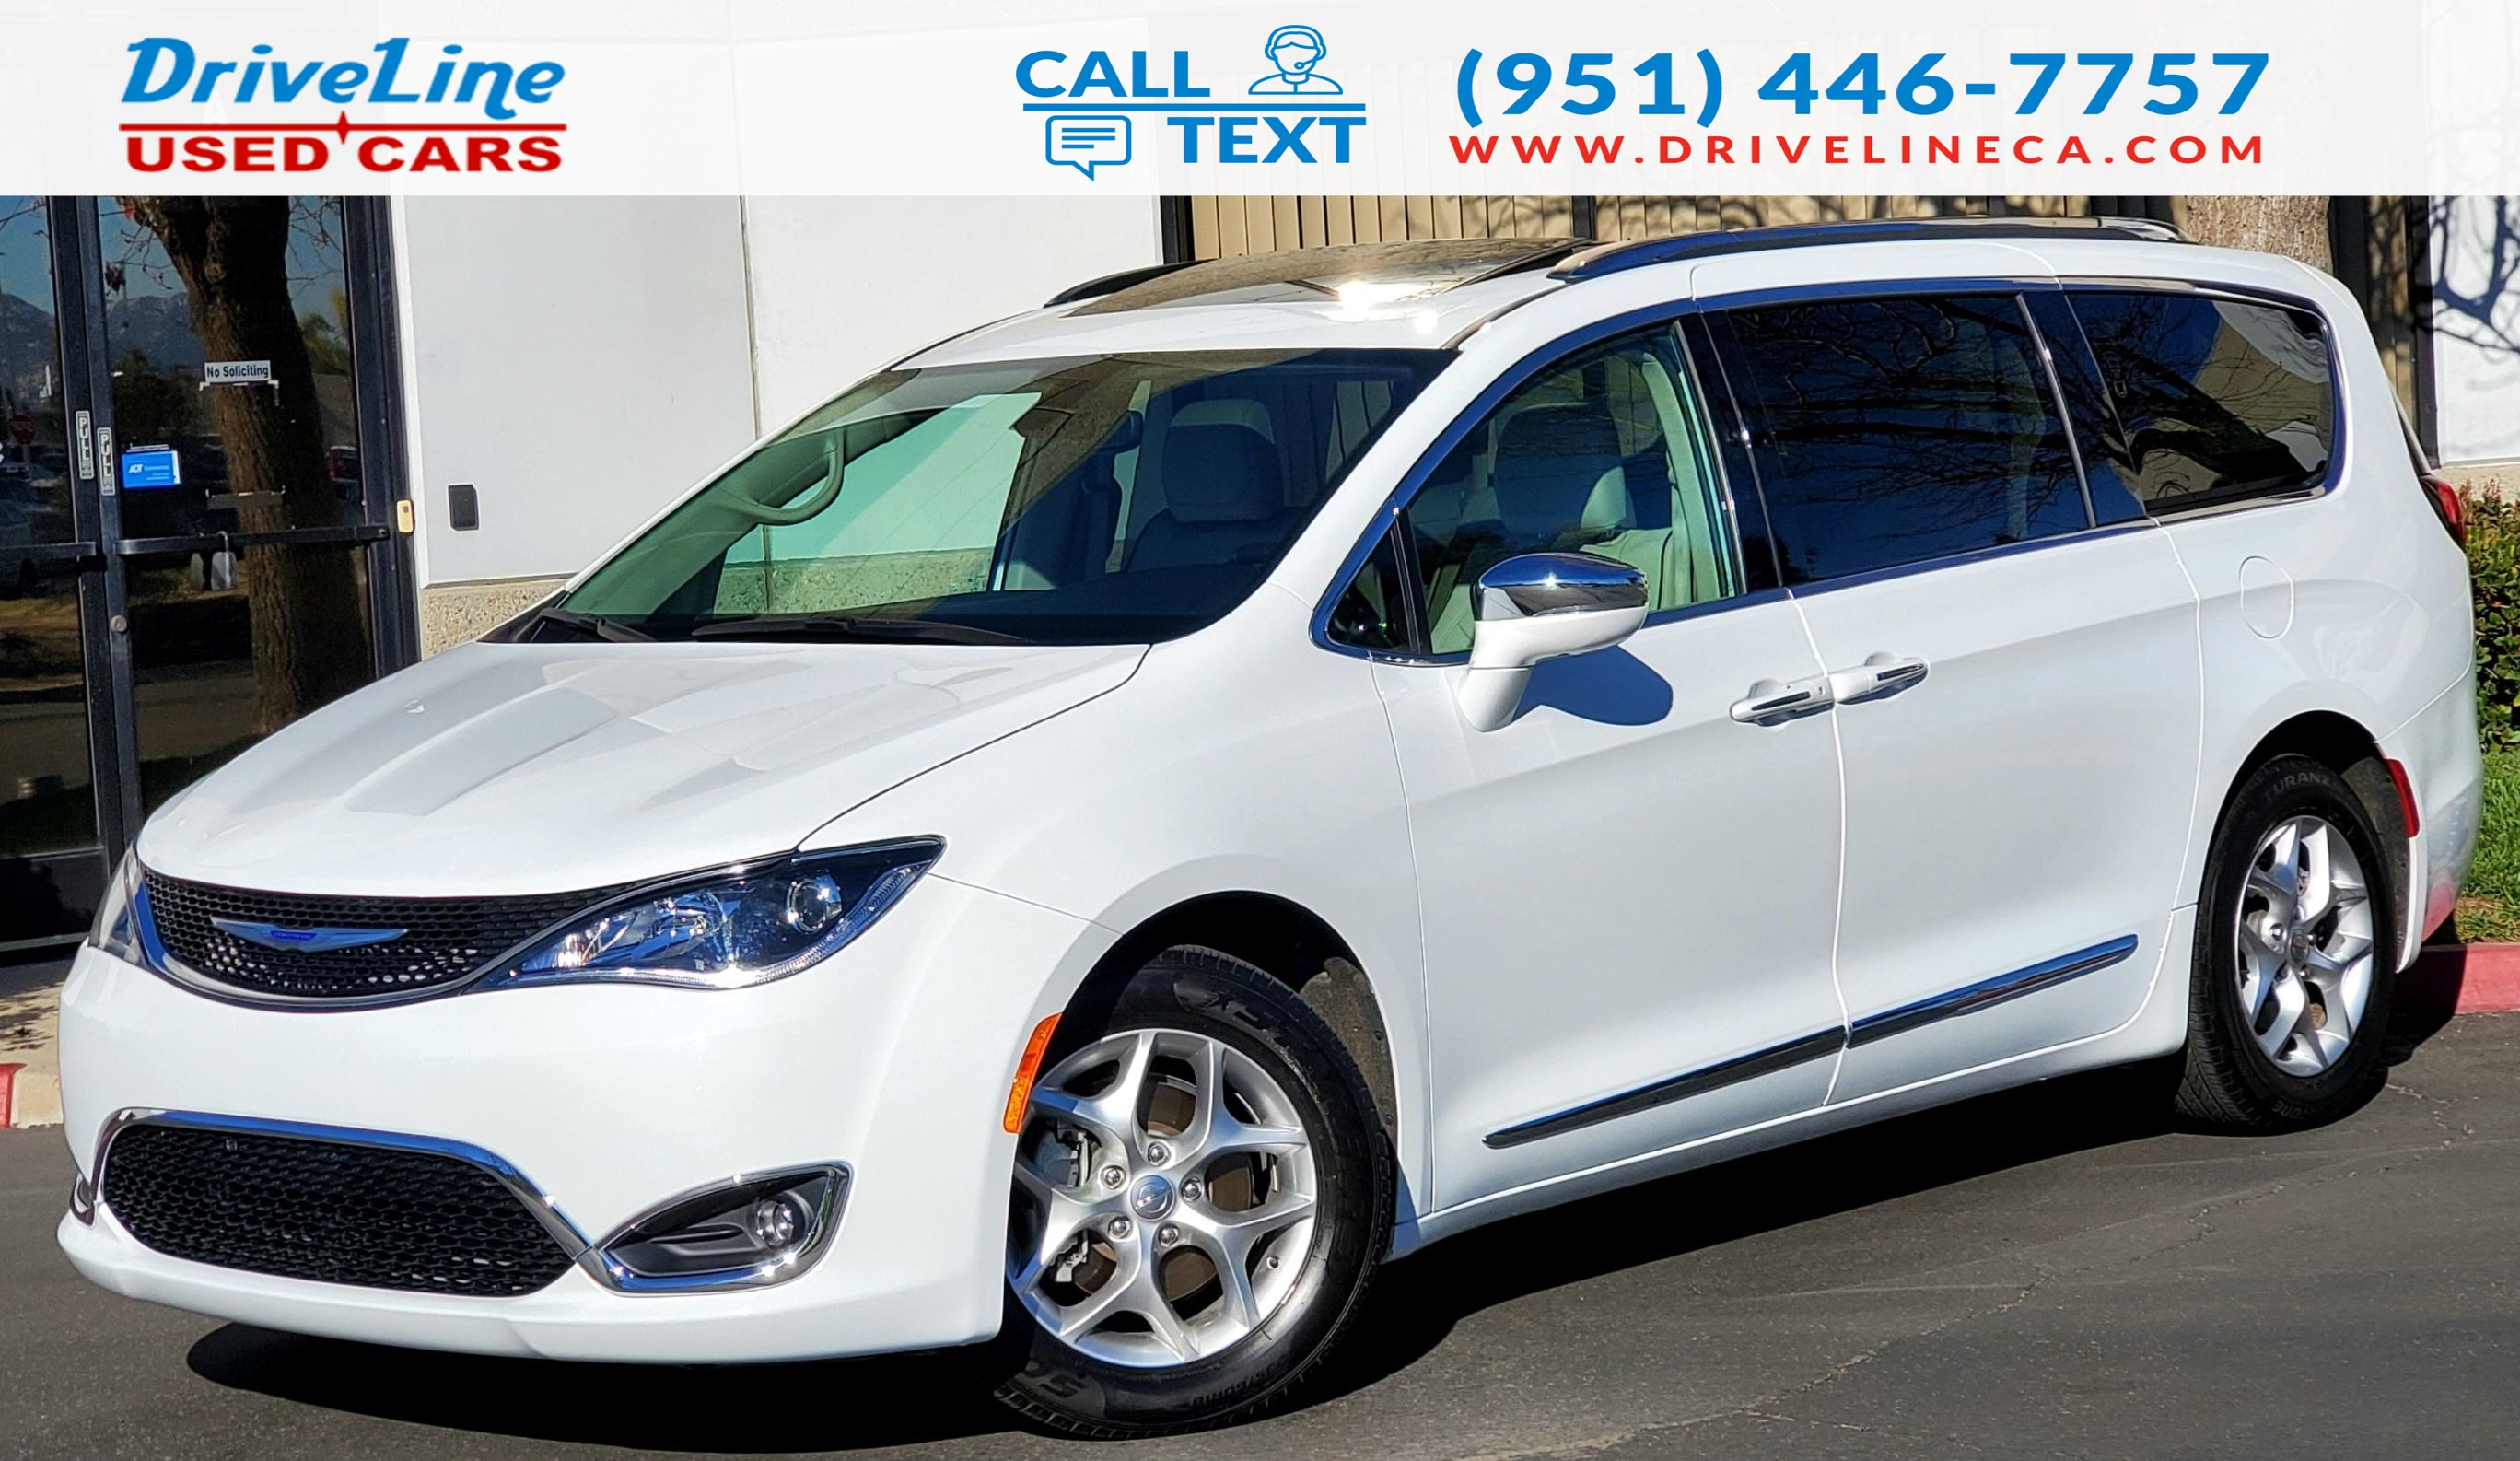 2019 Chrysler Pacifica Limited - Fully Loaded - $46,690 MSRP